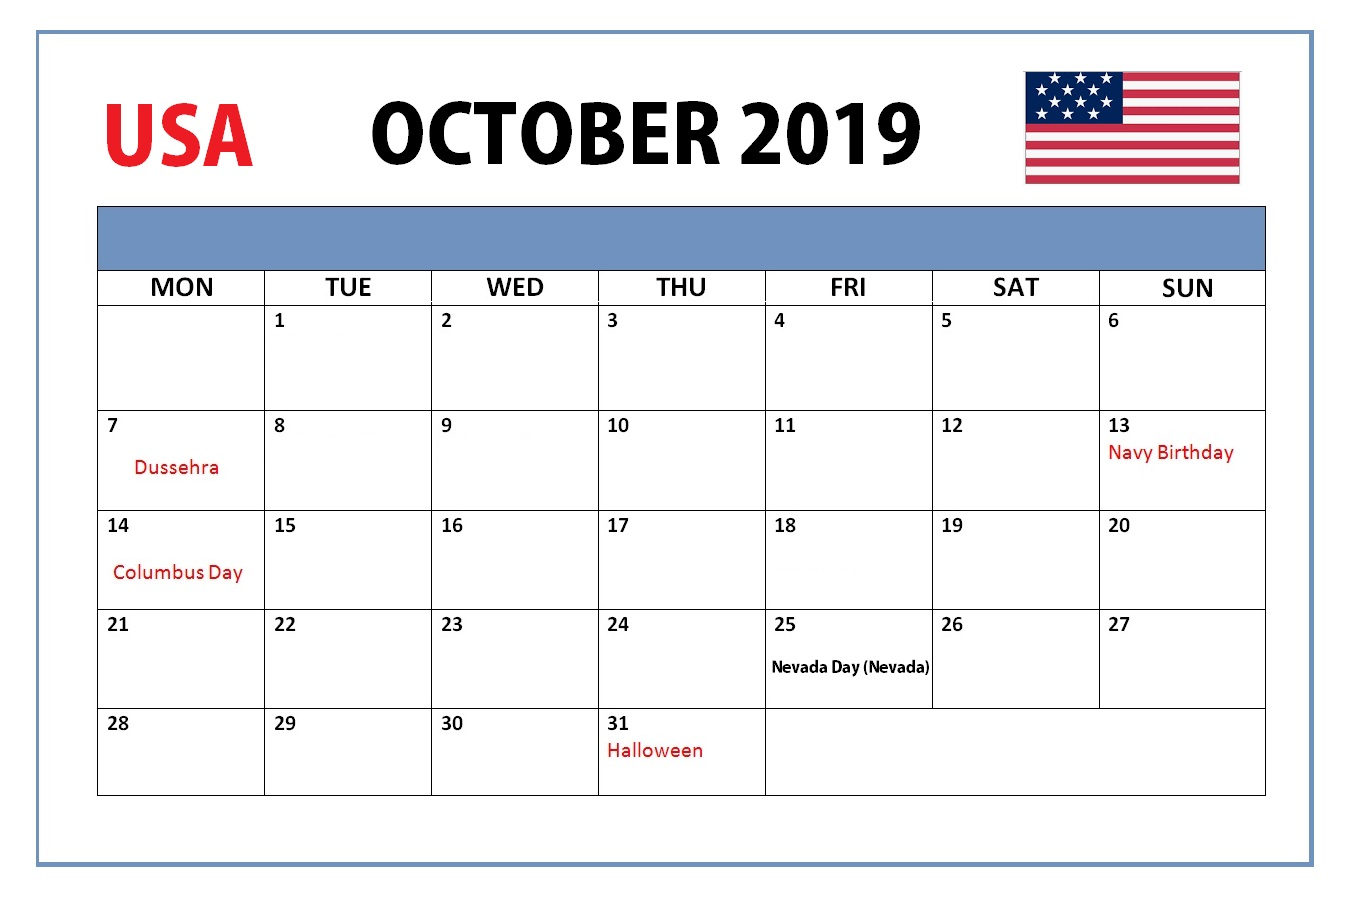 October 2019 USA Holidays Calendar